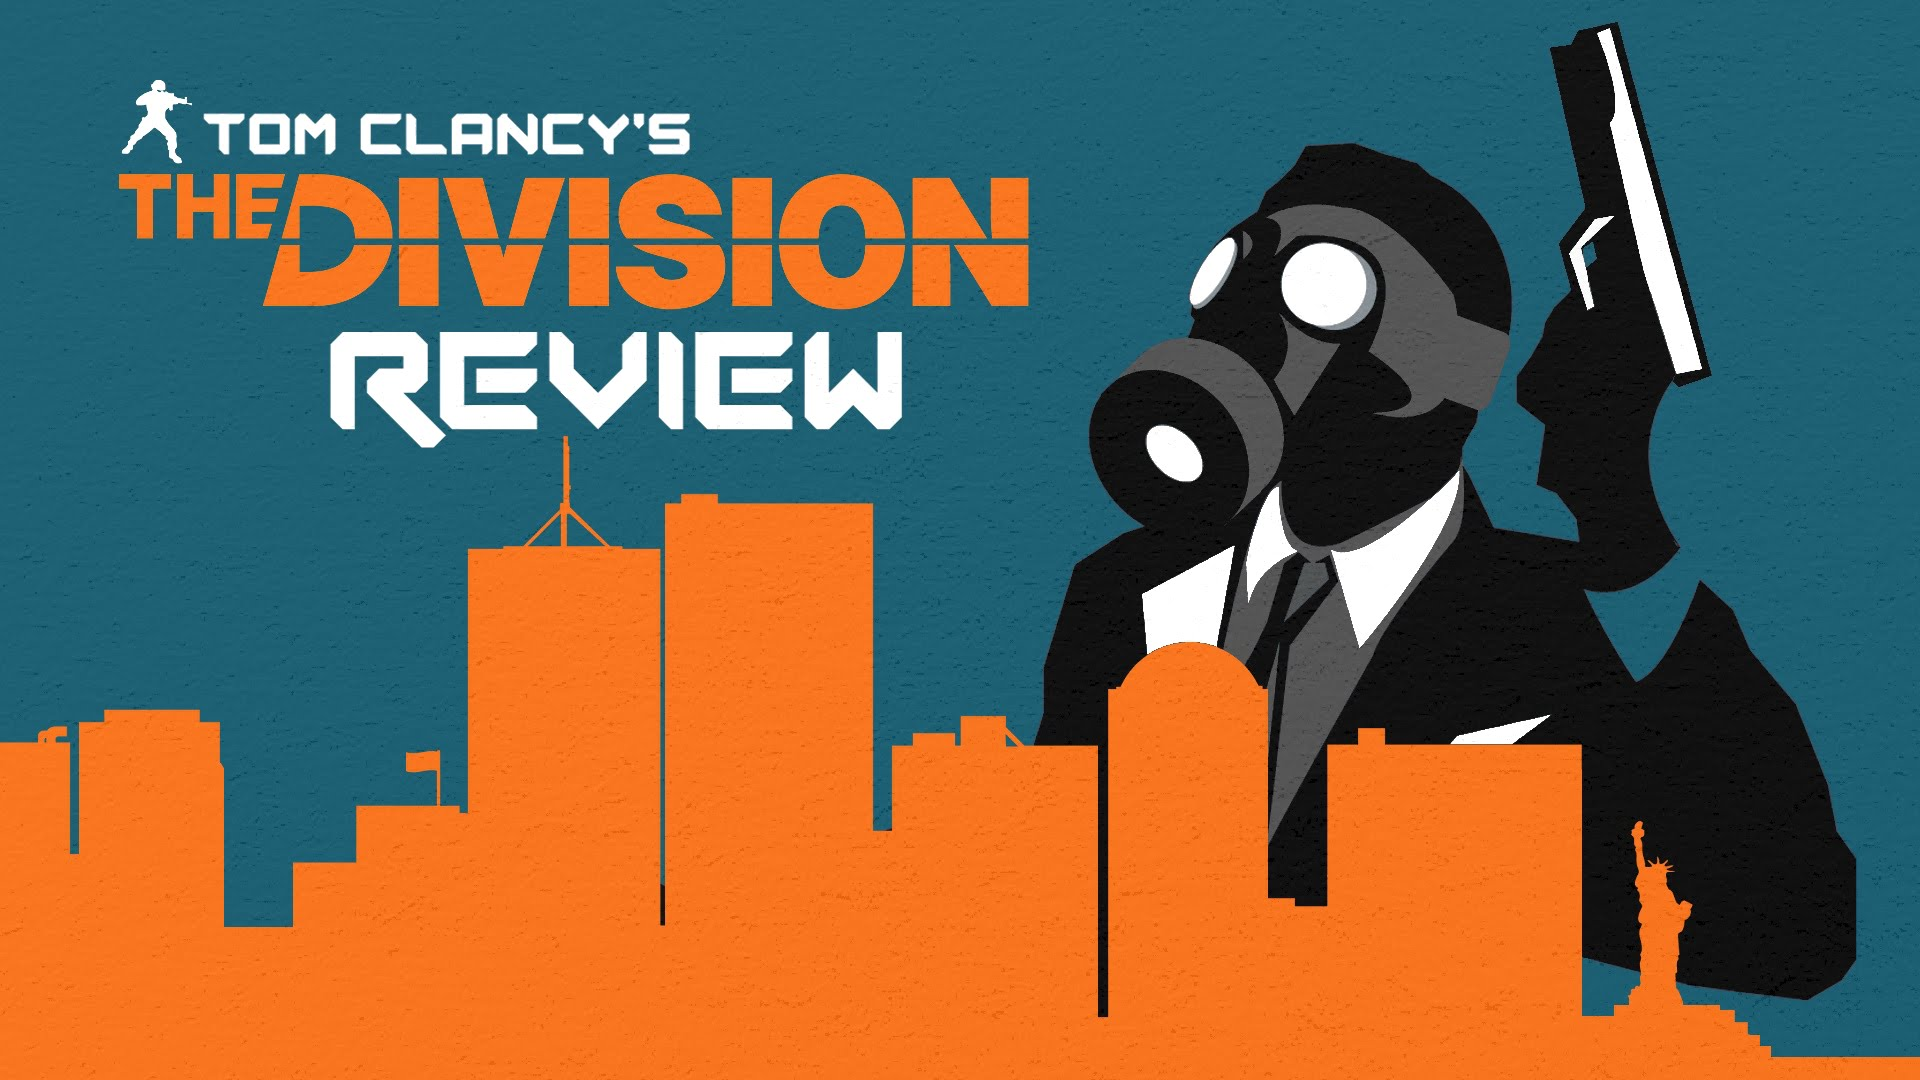 Tom Clancy's The Division REVIEW (In.